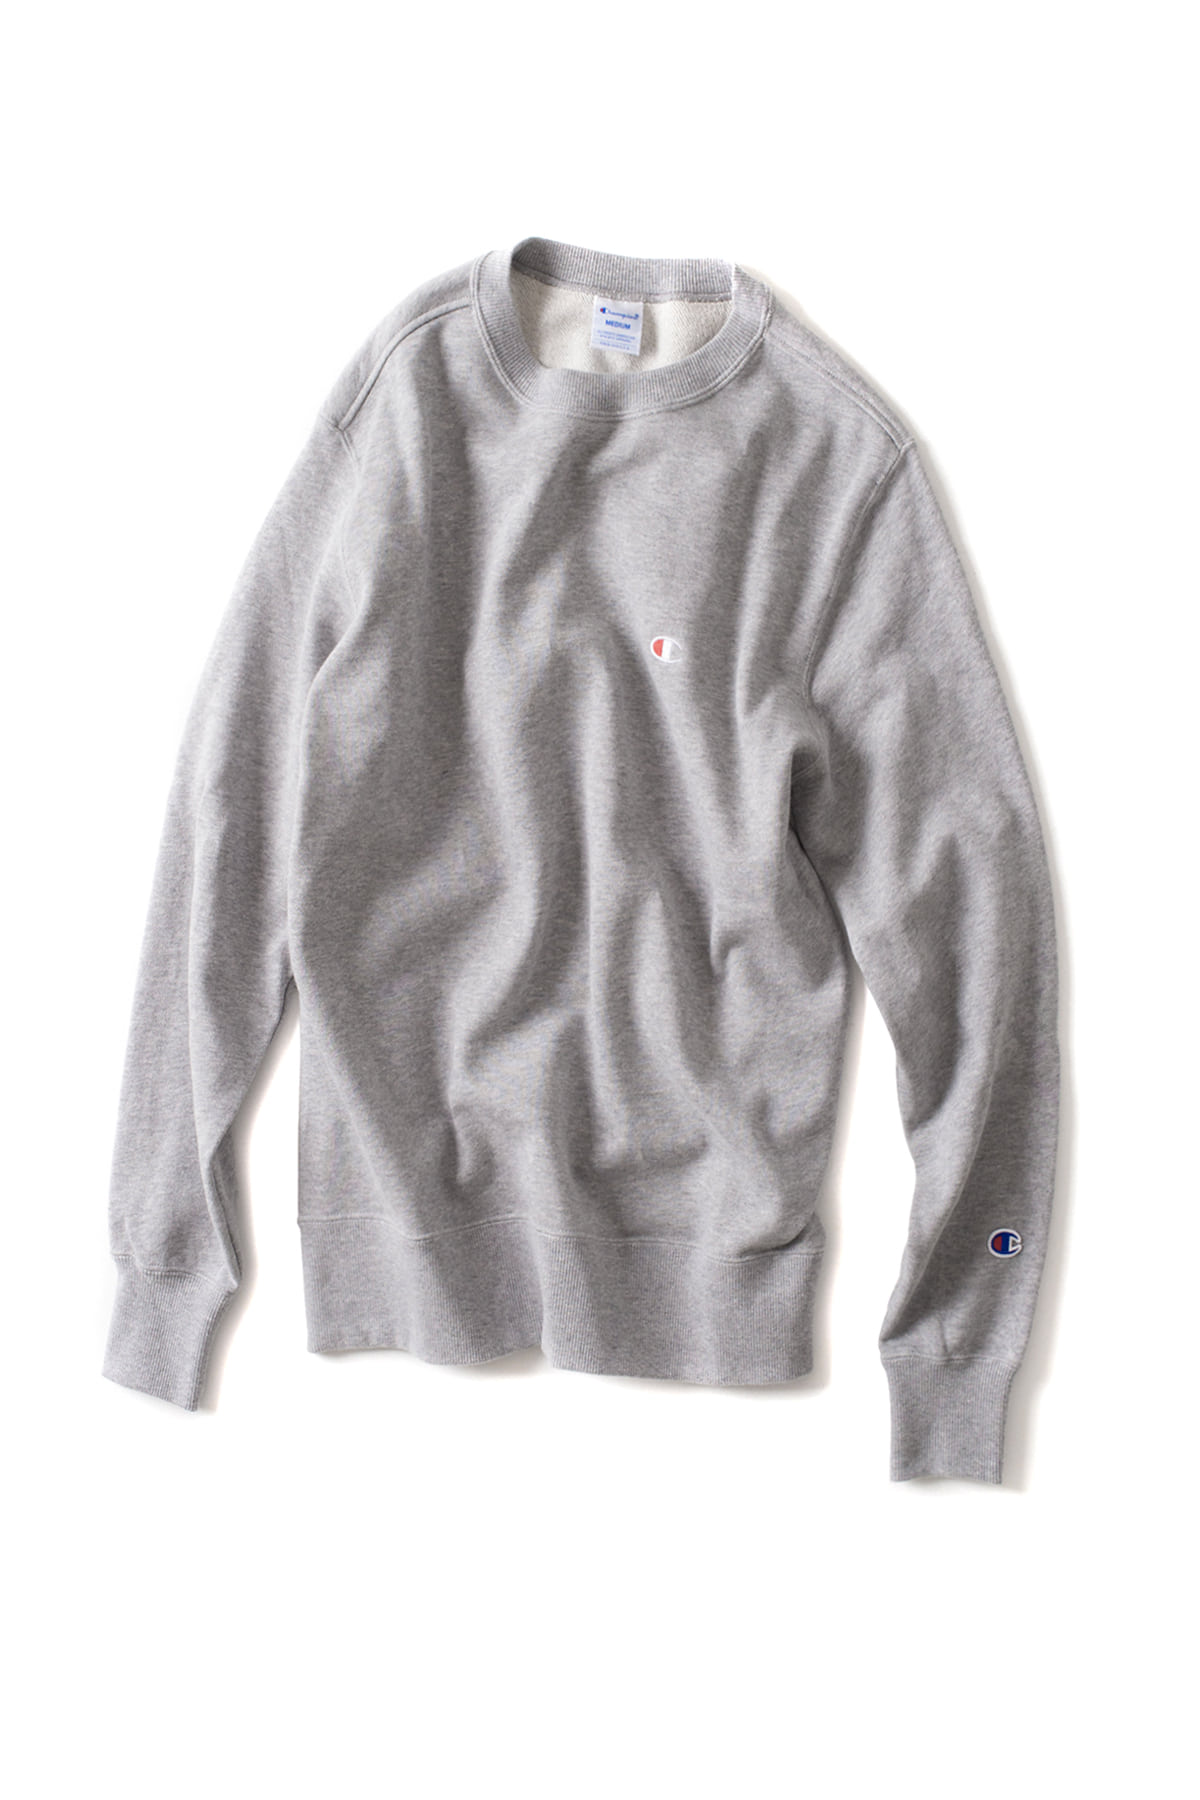 Champion : Basic Crewneck Sweat Shirt (Oxford Grey)